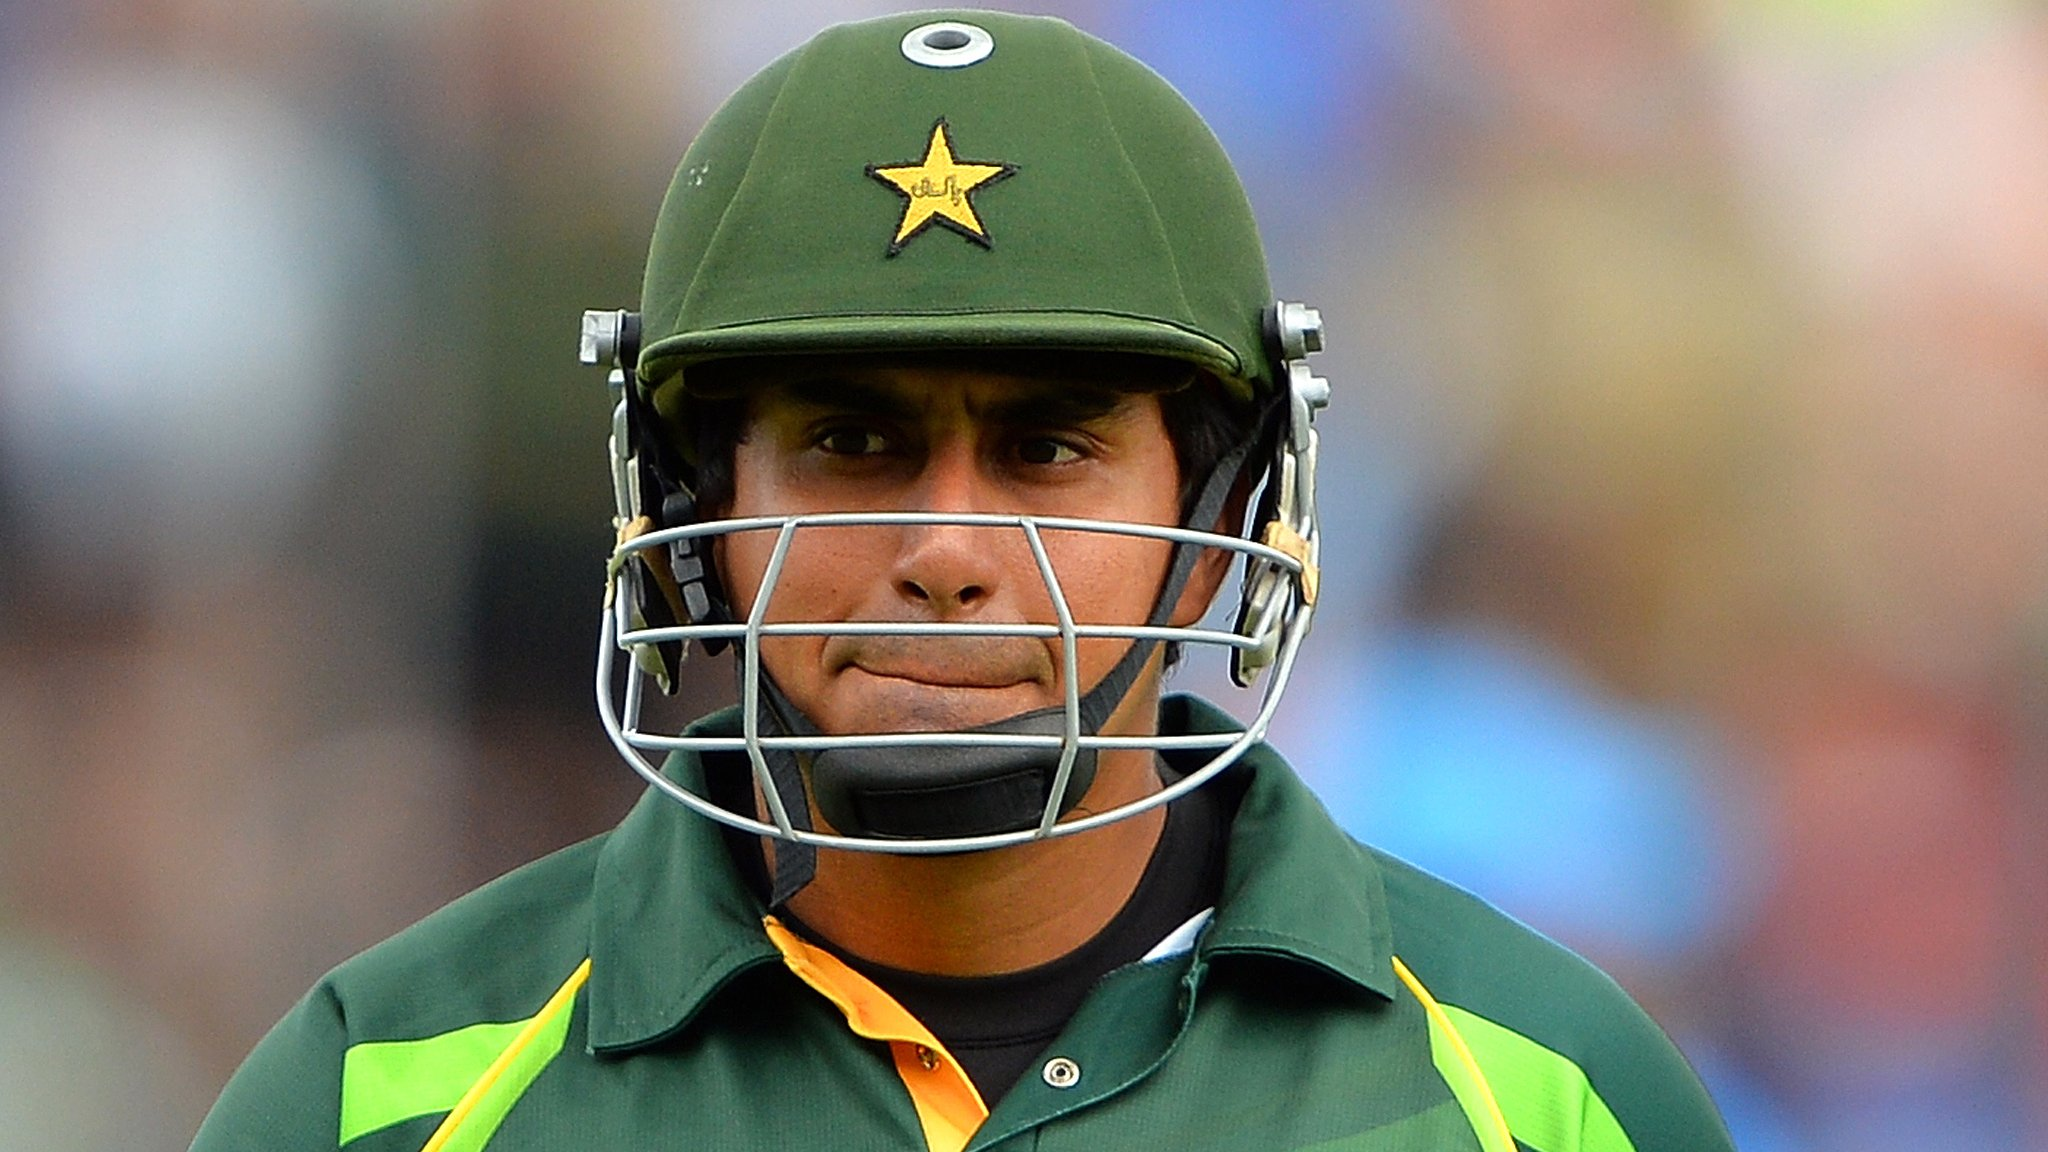 Nasir Jamshed: Ex-Pakistan opener banned for 10 years over spot-fixing